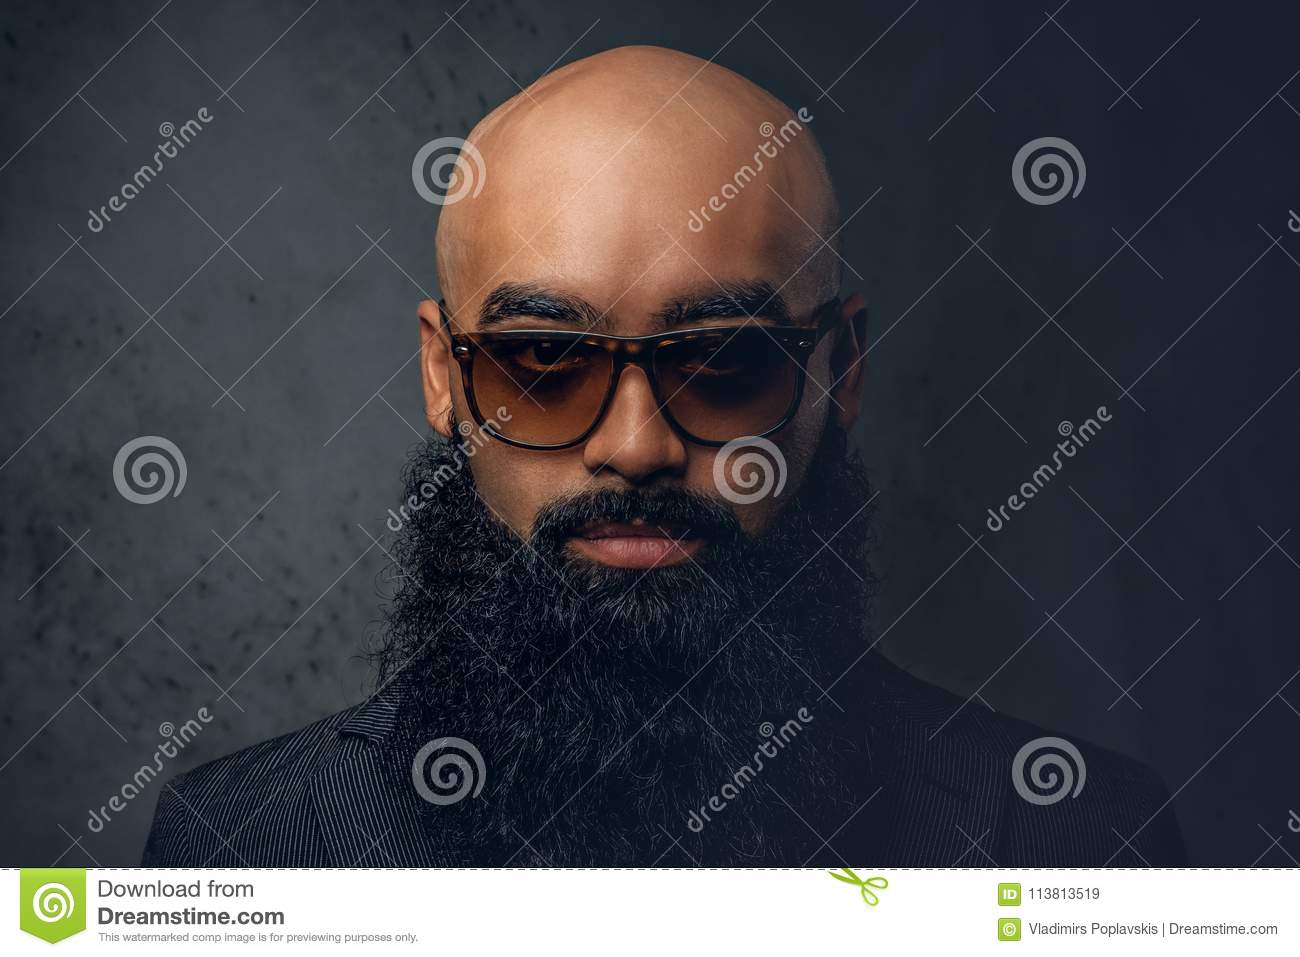 Can recommend care of shaved head